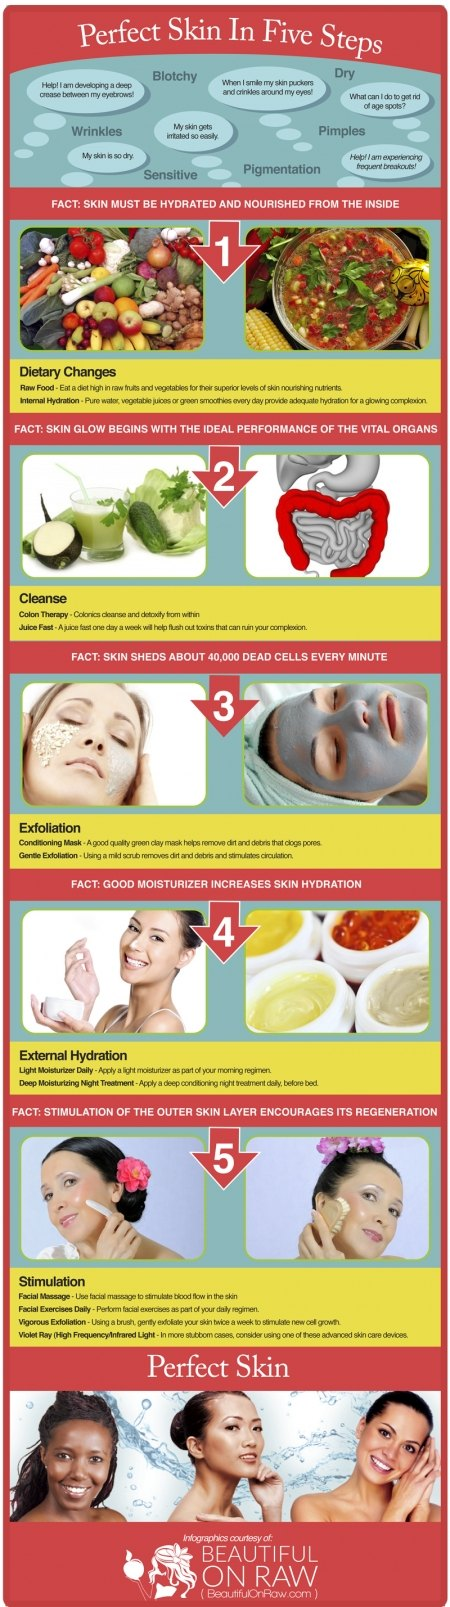 get perfect skin in 5 easy steps